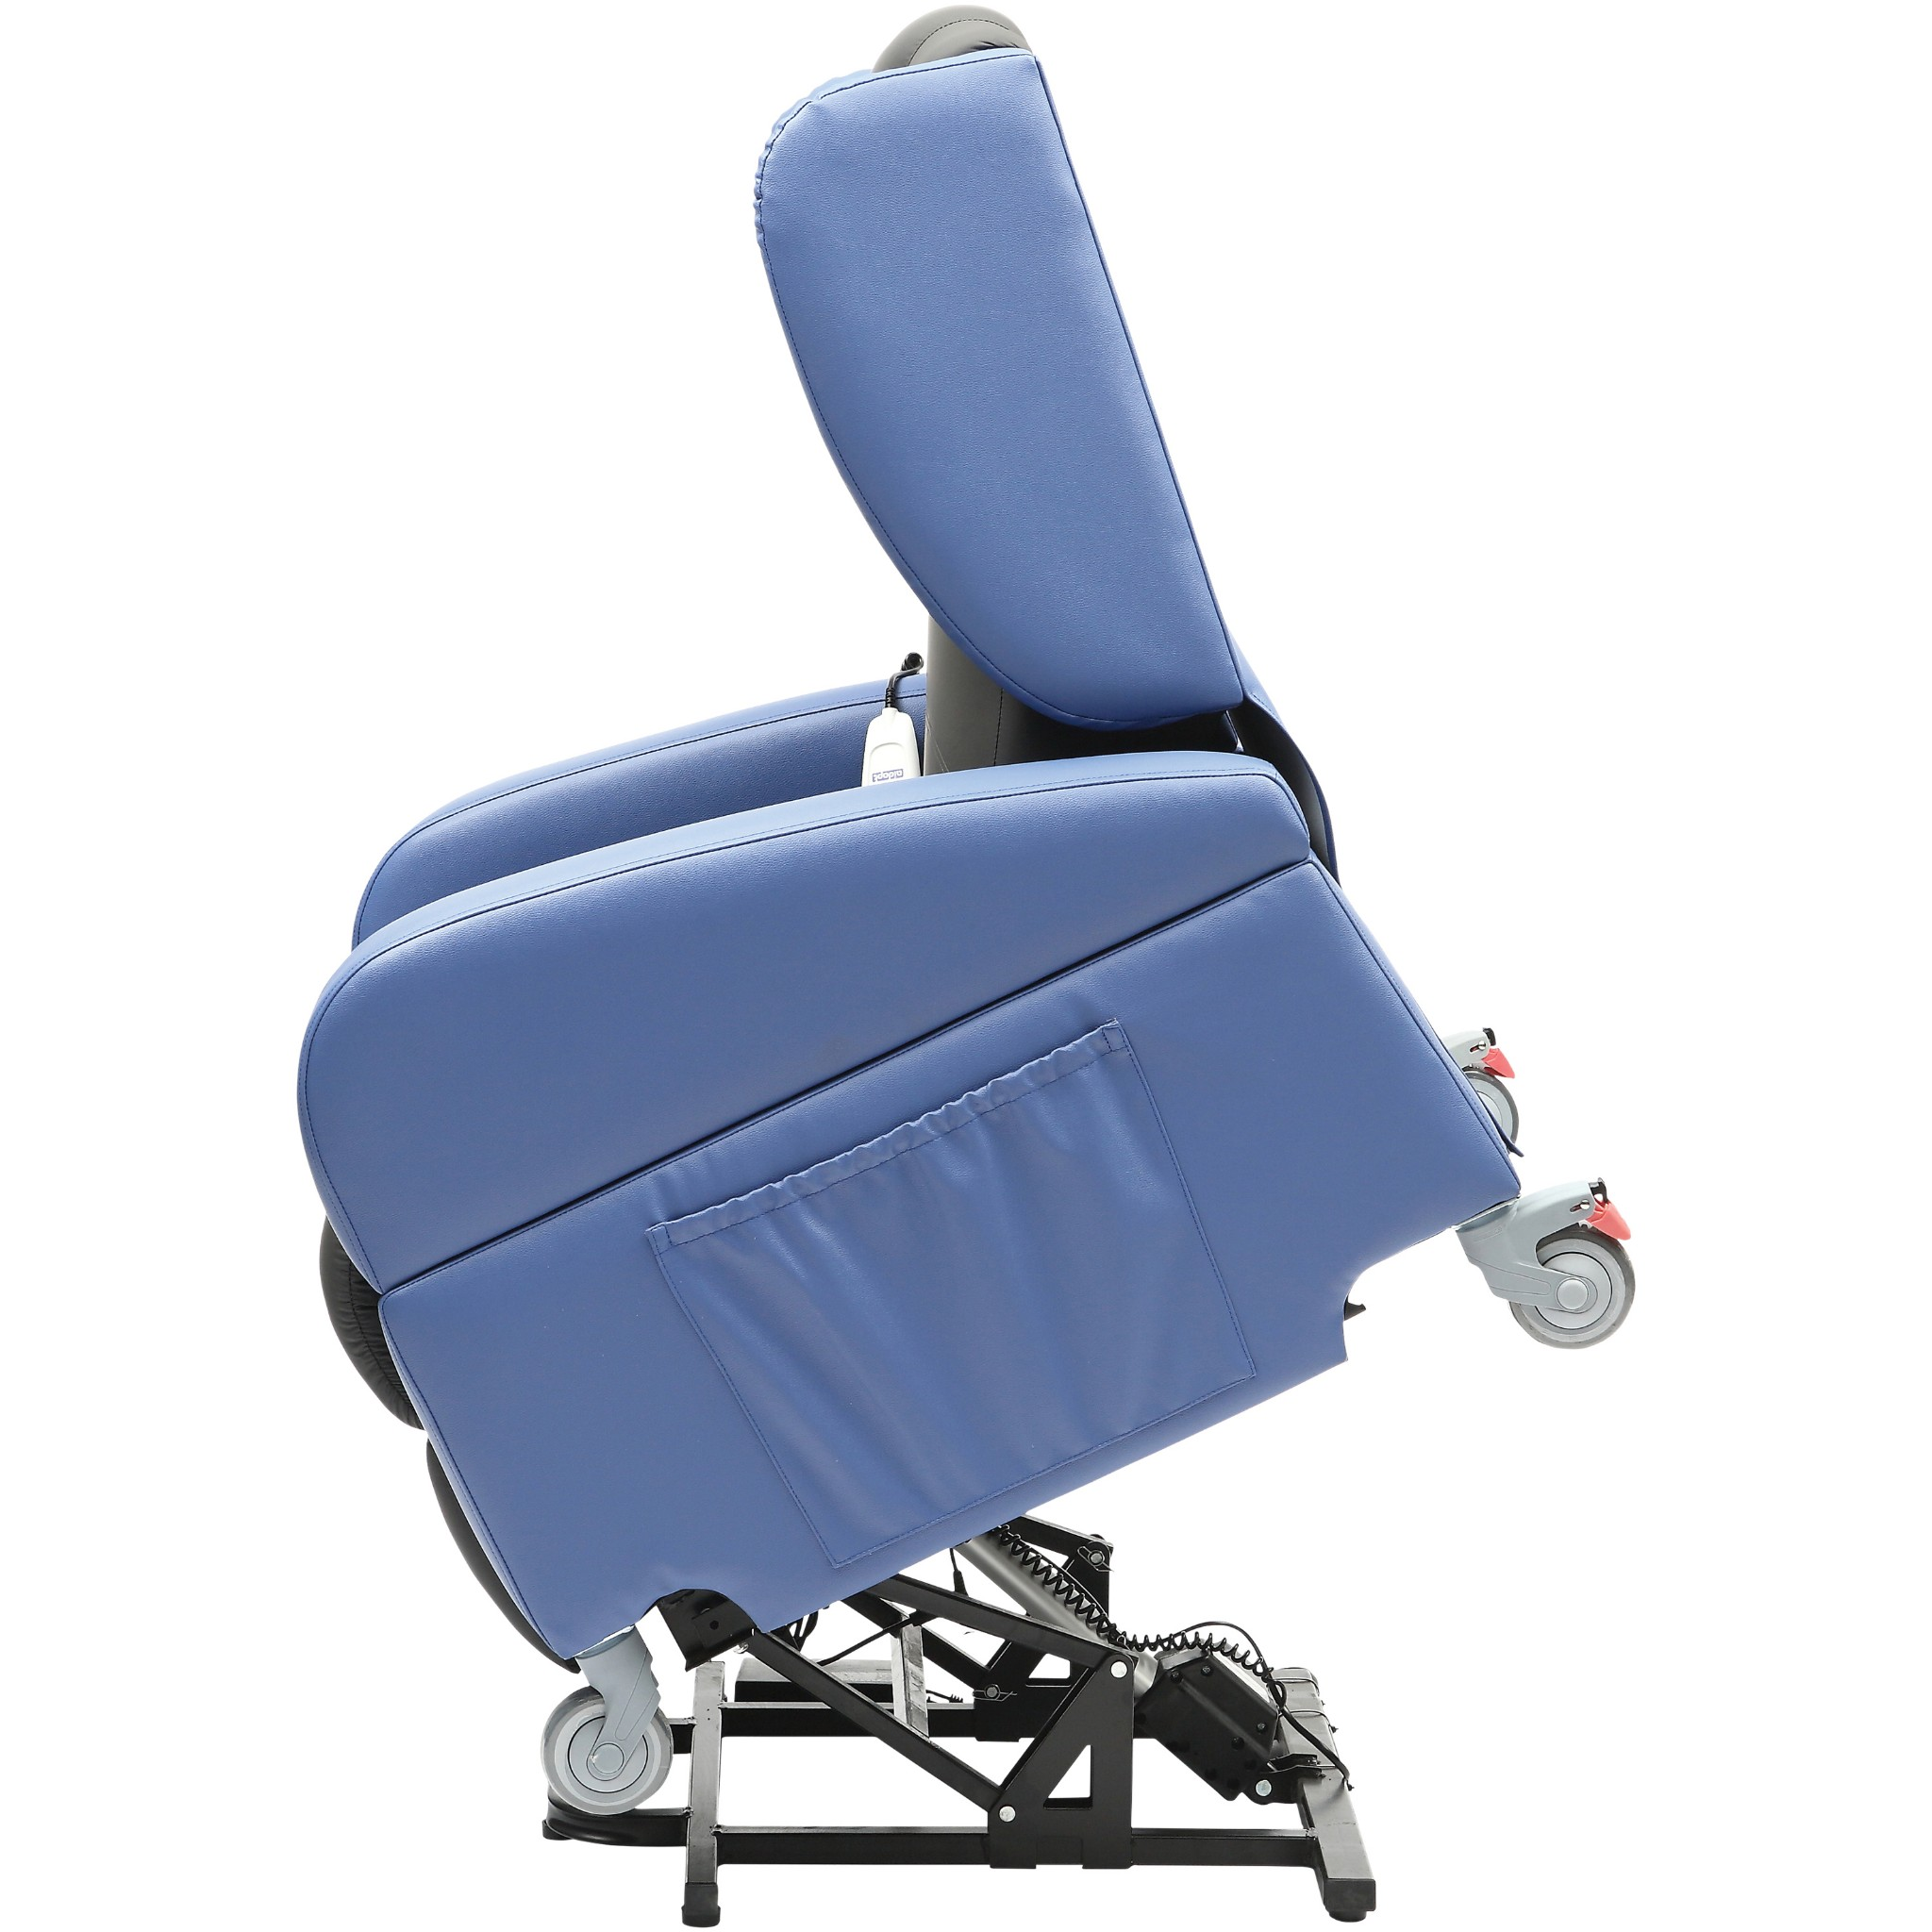 Details about Brookfield Dual Motor Riser Recliner Chair 160kg Weight Capacity